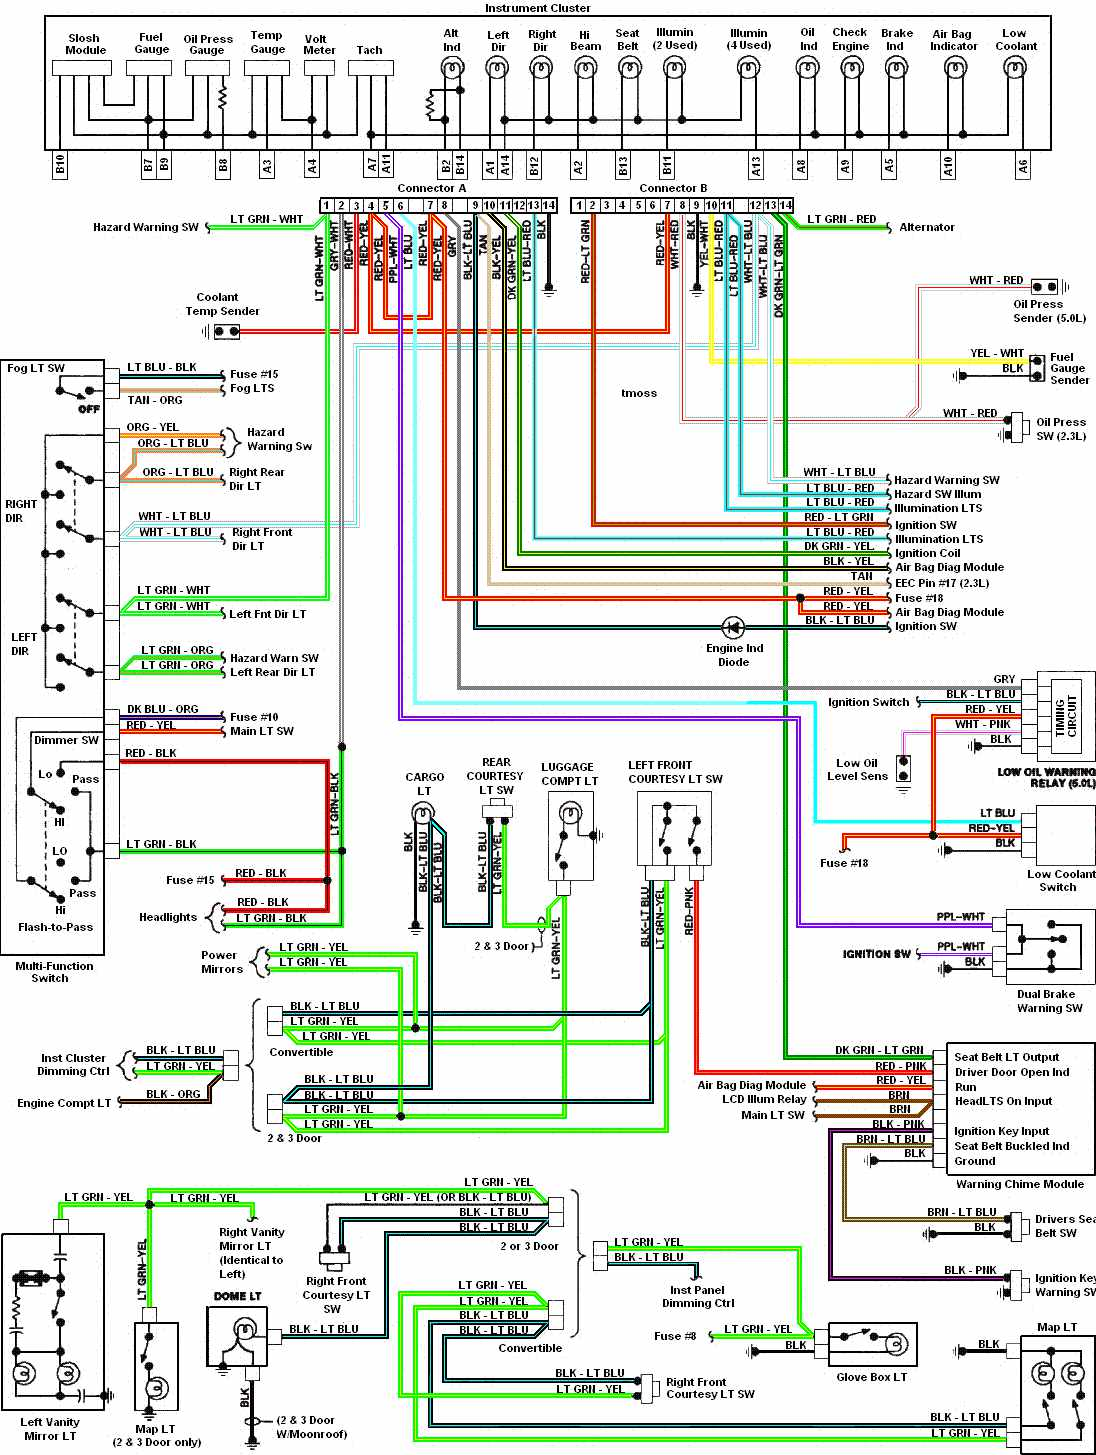 2000 Turn Signal Wiring Diagram 800 Vulcan | Wiring Liry Buell Xb Wiring Diagram Headlight on buell xb9sx wiring diagram, buell blast wiring diagram, buell lightning wiring diagram, buell xb9r wiring diagram, buell xb wiring diagram, buell s1 wiring diagram, buell cyclone wiring diagram,